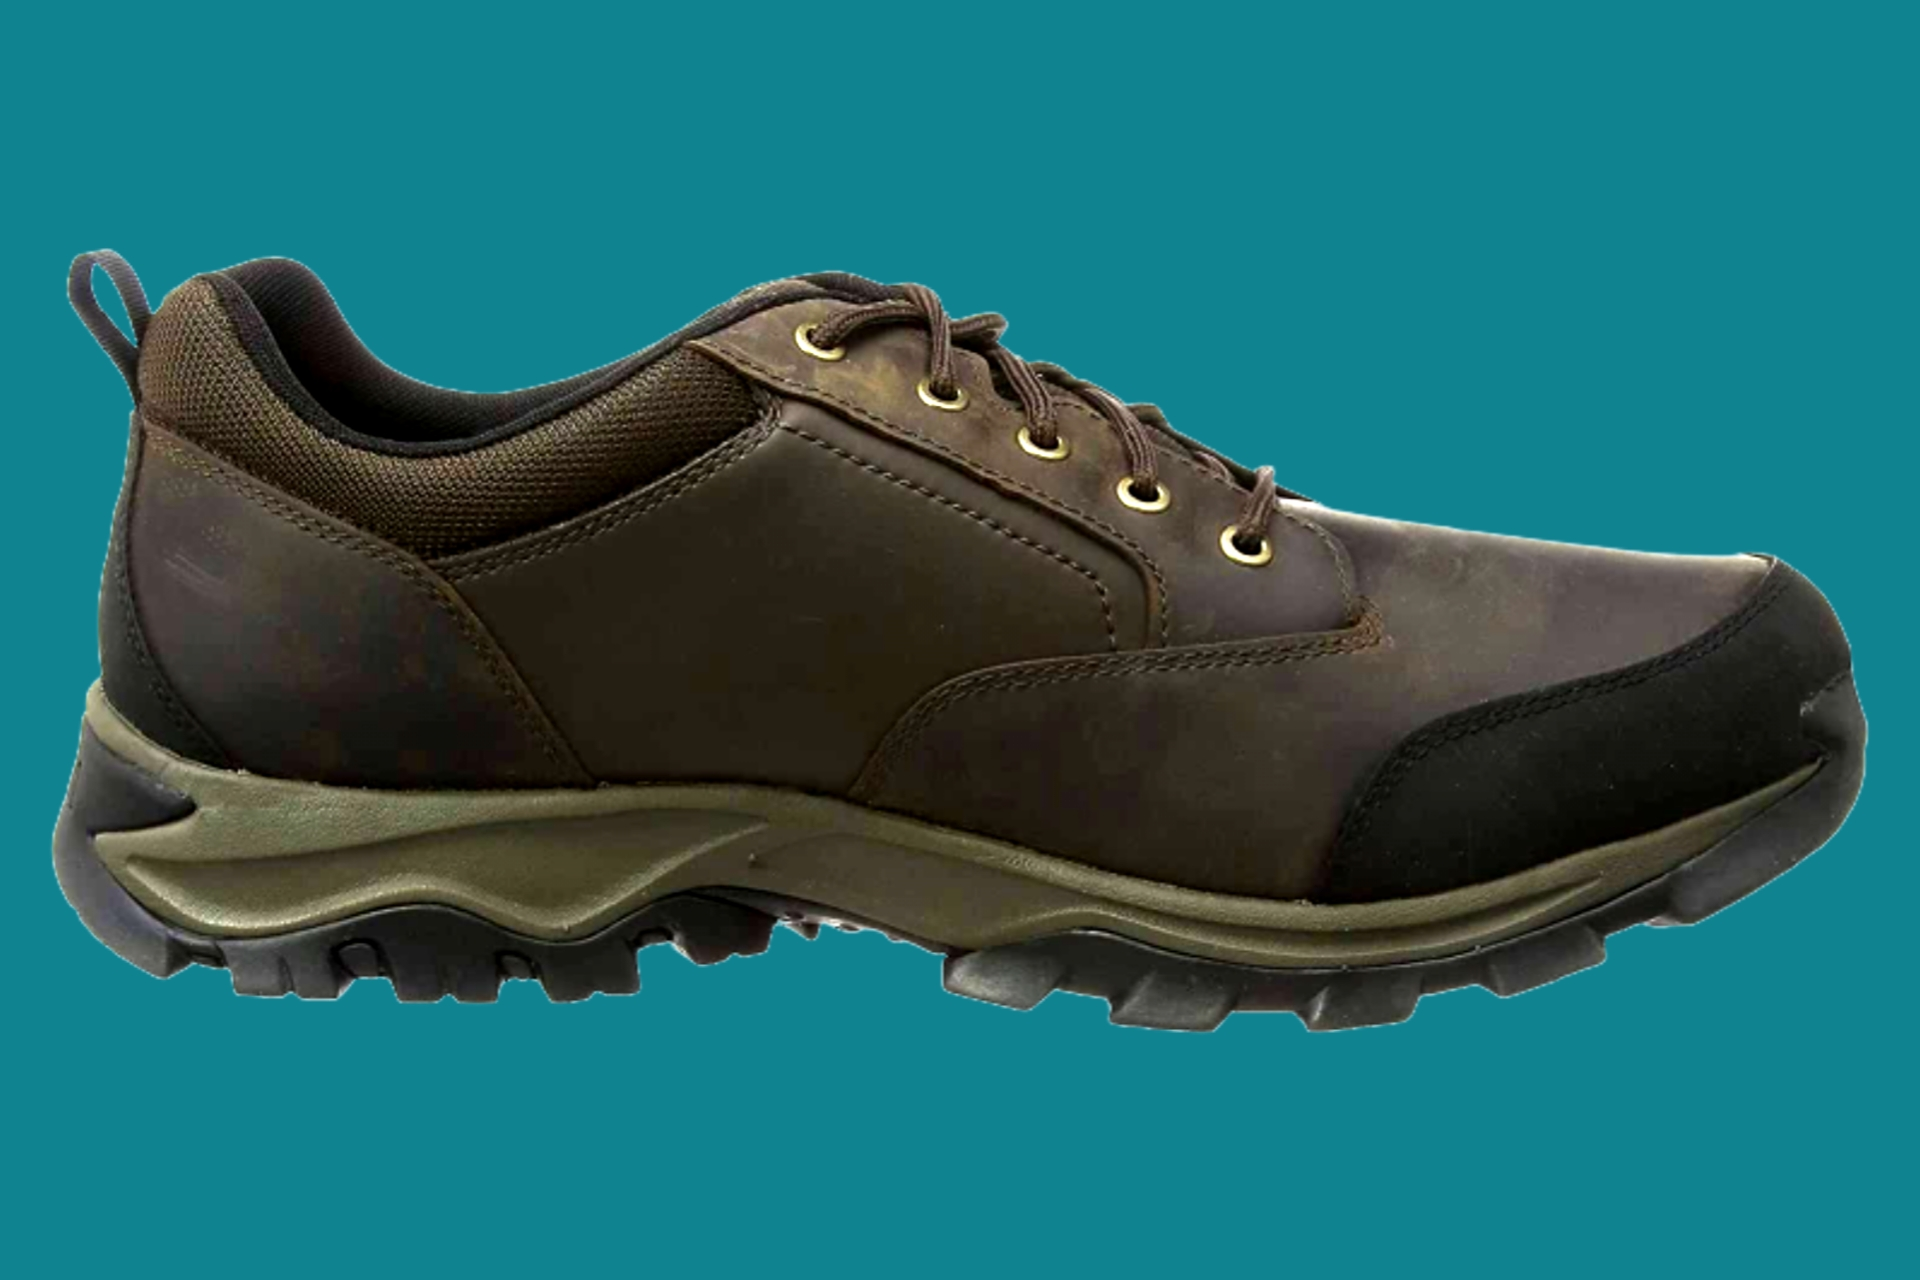 Comfortable hiking shoe by Timberland